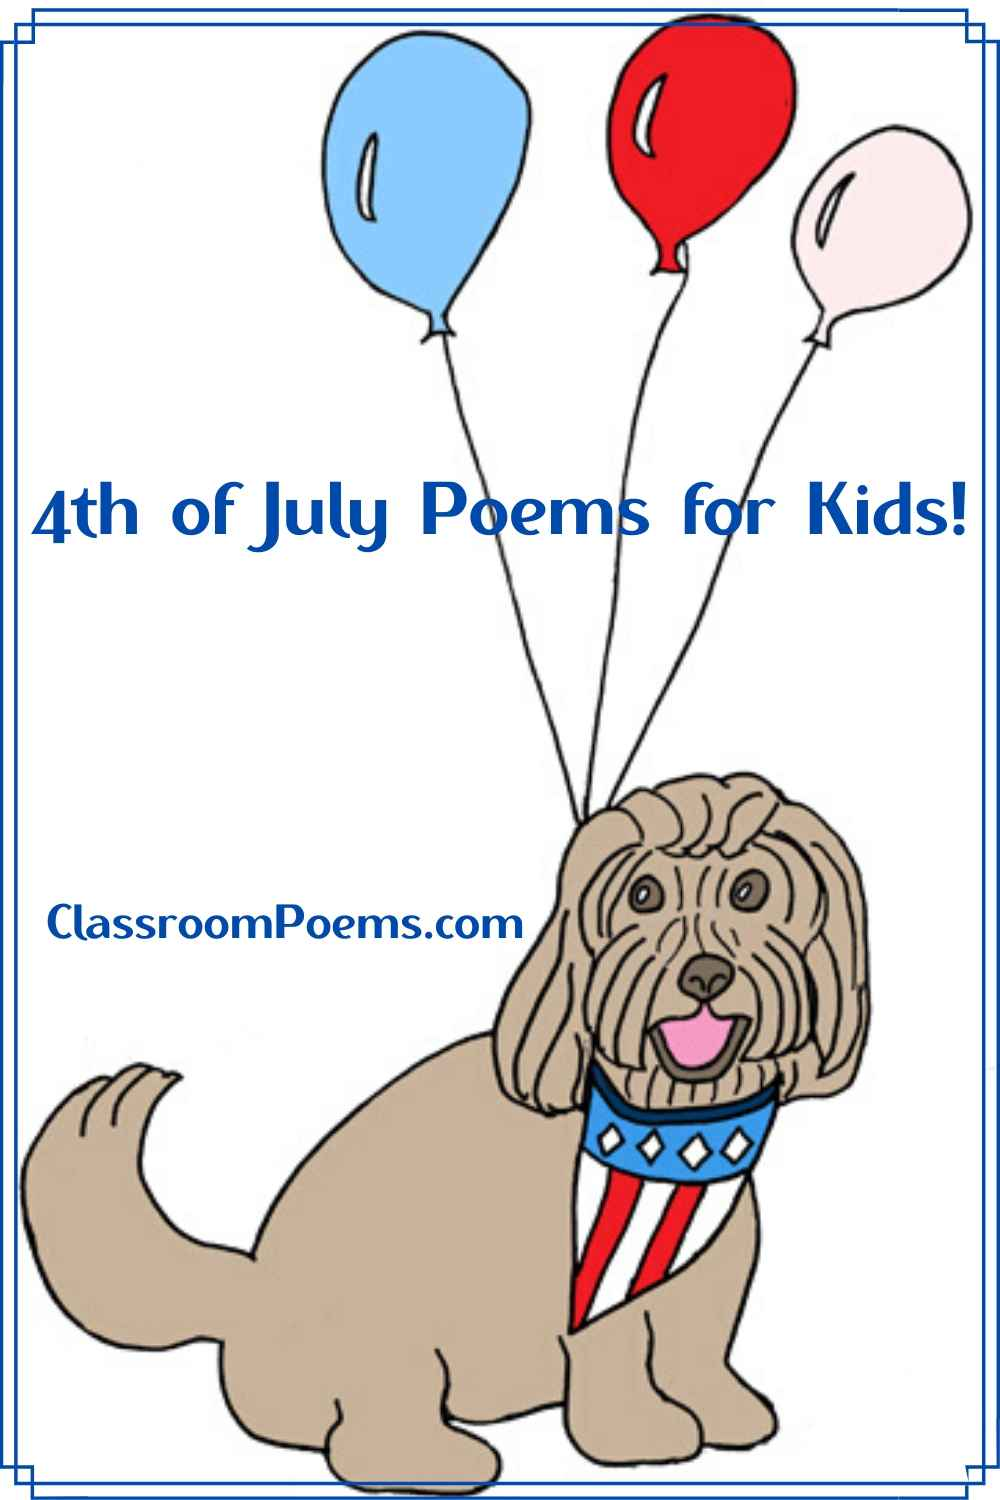 Dog with balloons. Independence day poem. 4th of July poem for kids.